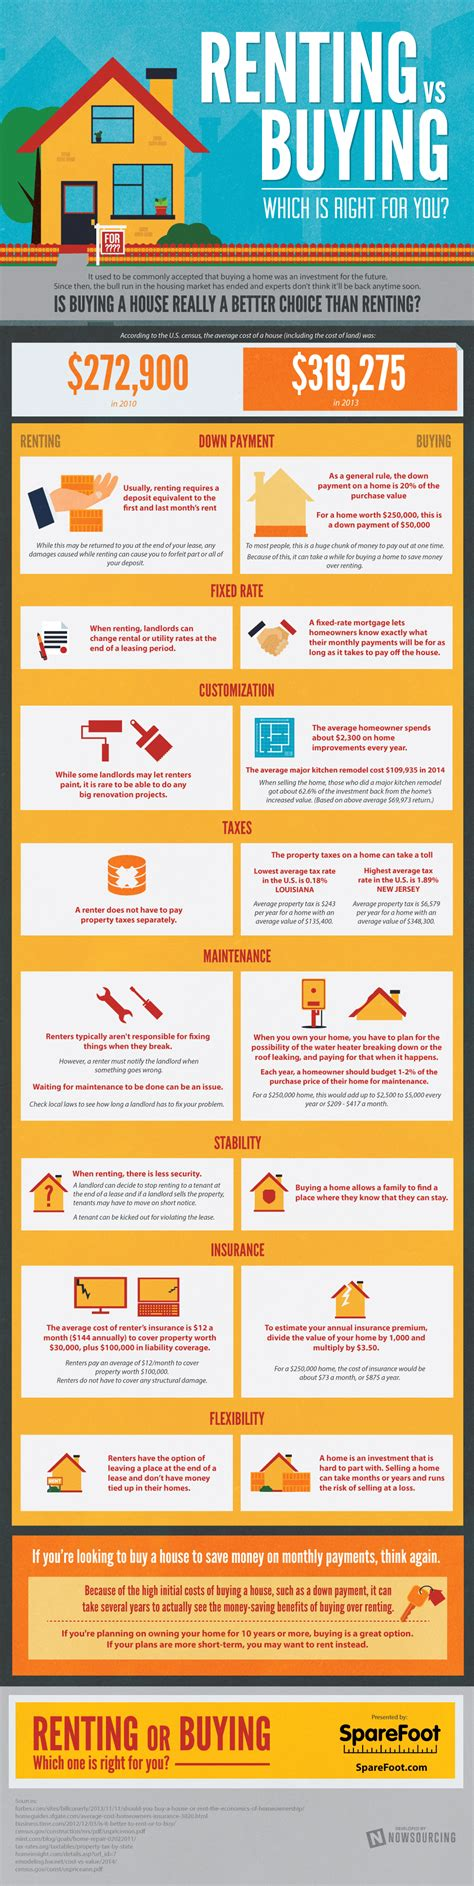 pros and cons of renting a house rent vs own which option is best for you infographic